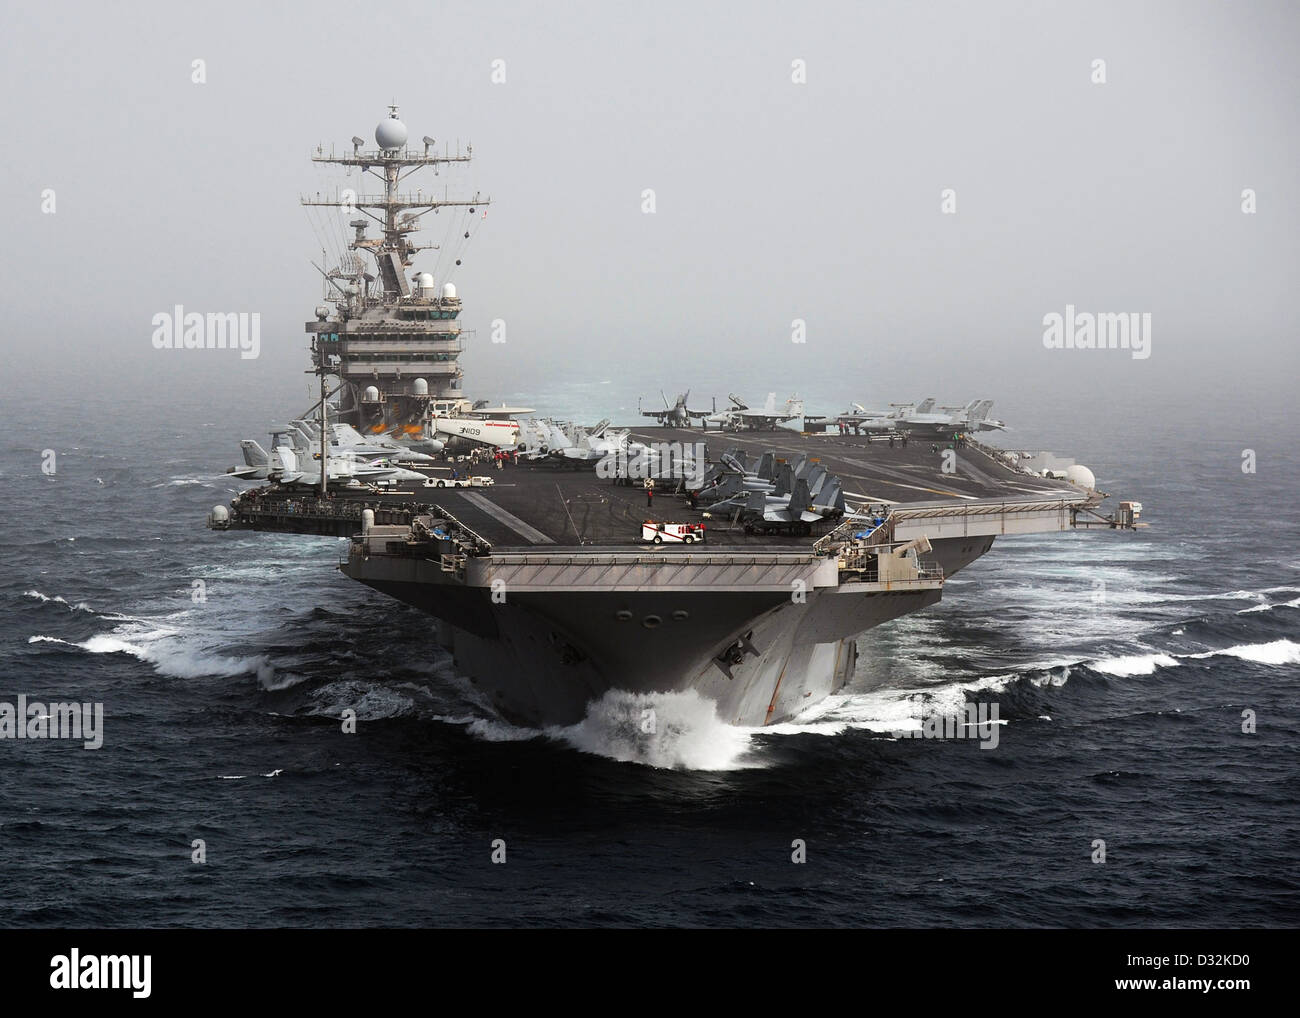 The aircraft carrier USS Abraham Lincoln transits the Arabian Sea. - Stock Image